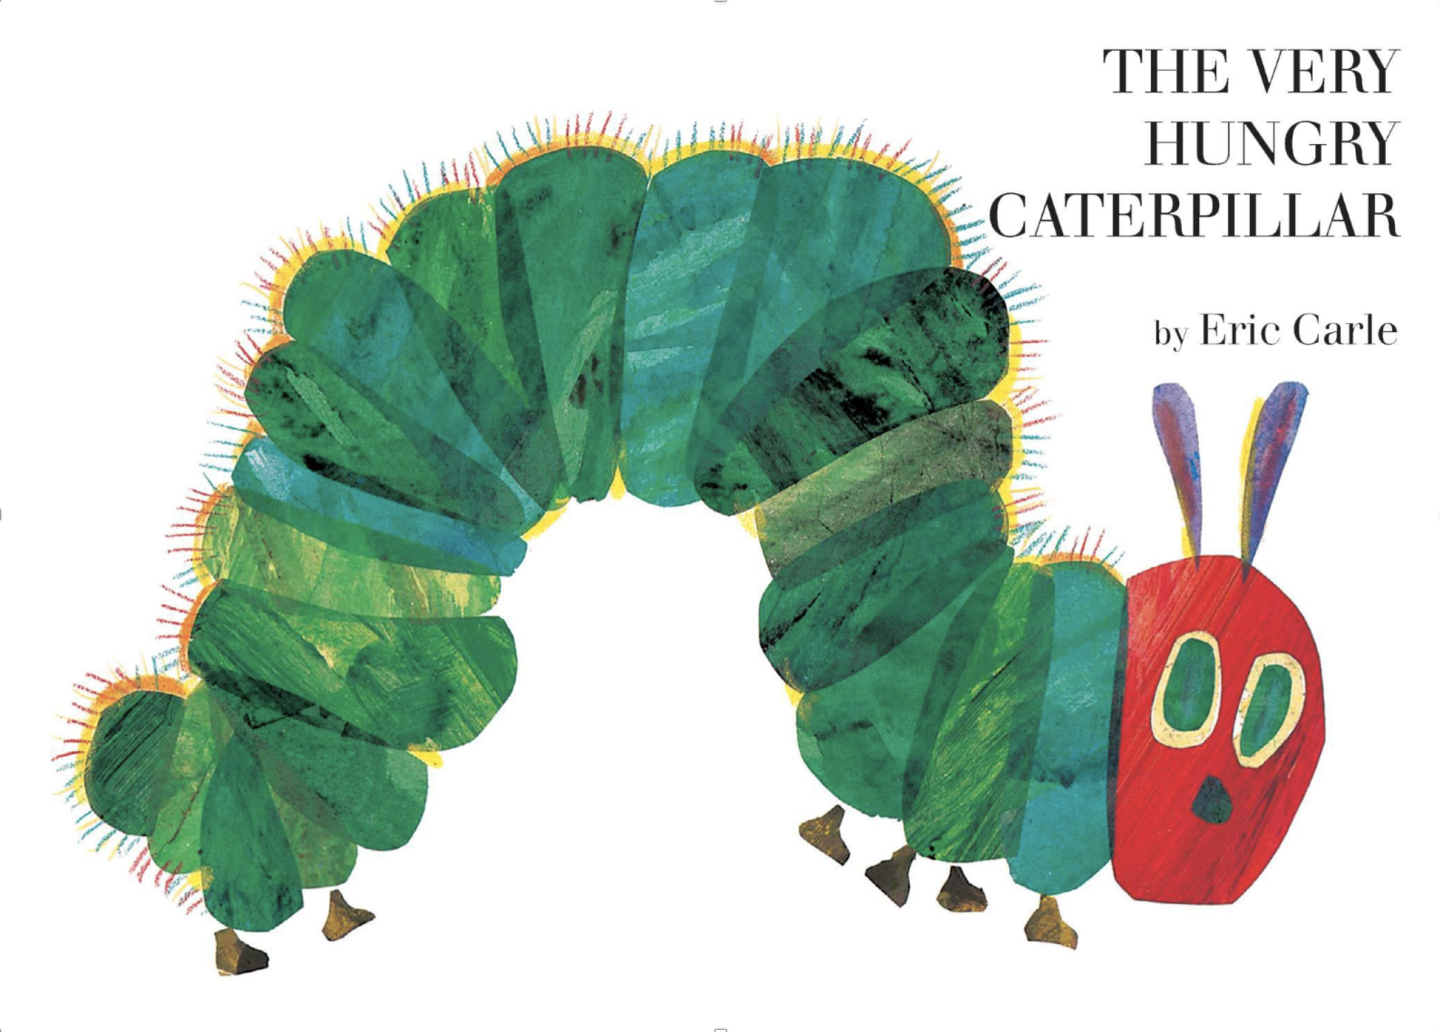 """Book cover of  """"The Very Hungry Caterpillar"""" by Eric Carle featuring a collage-style illustration of a green caterpillar with a red head."""